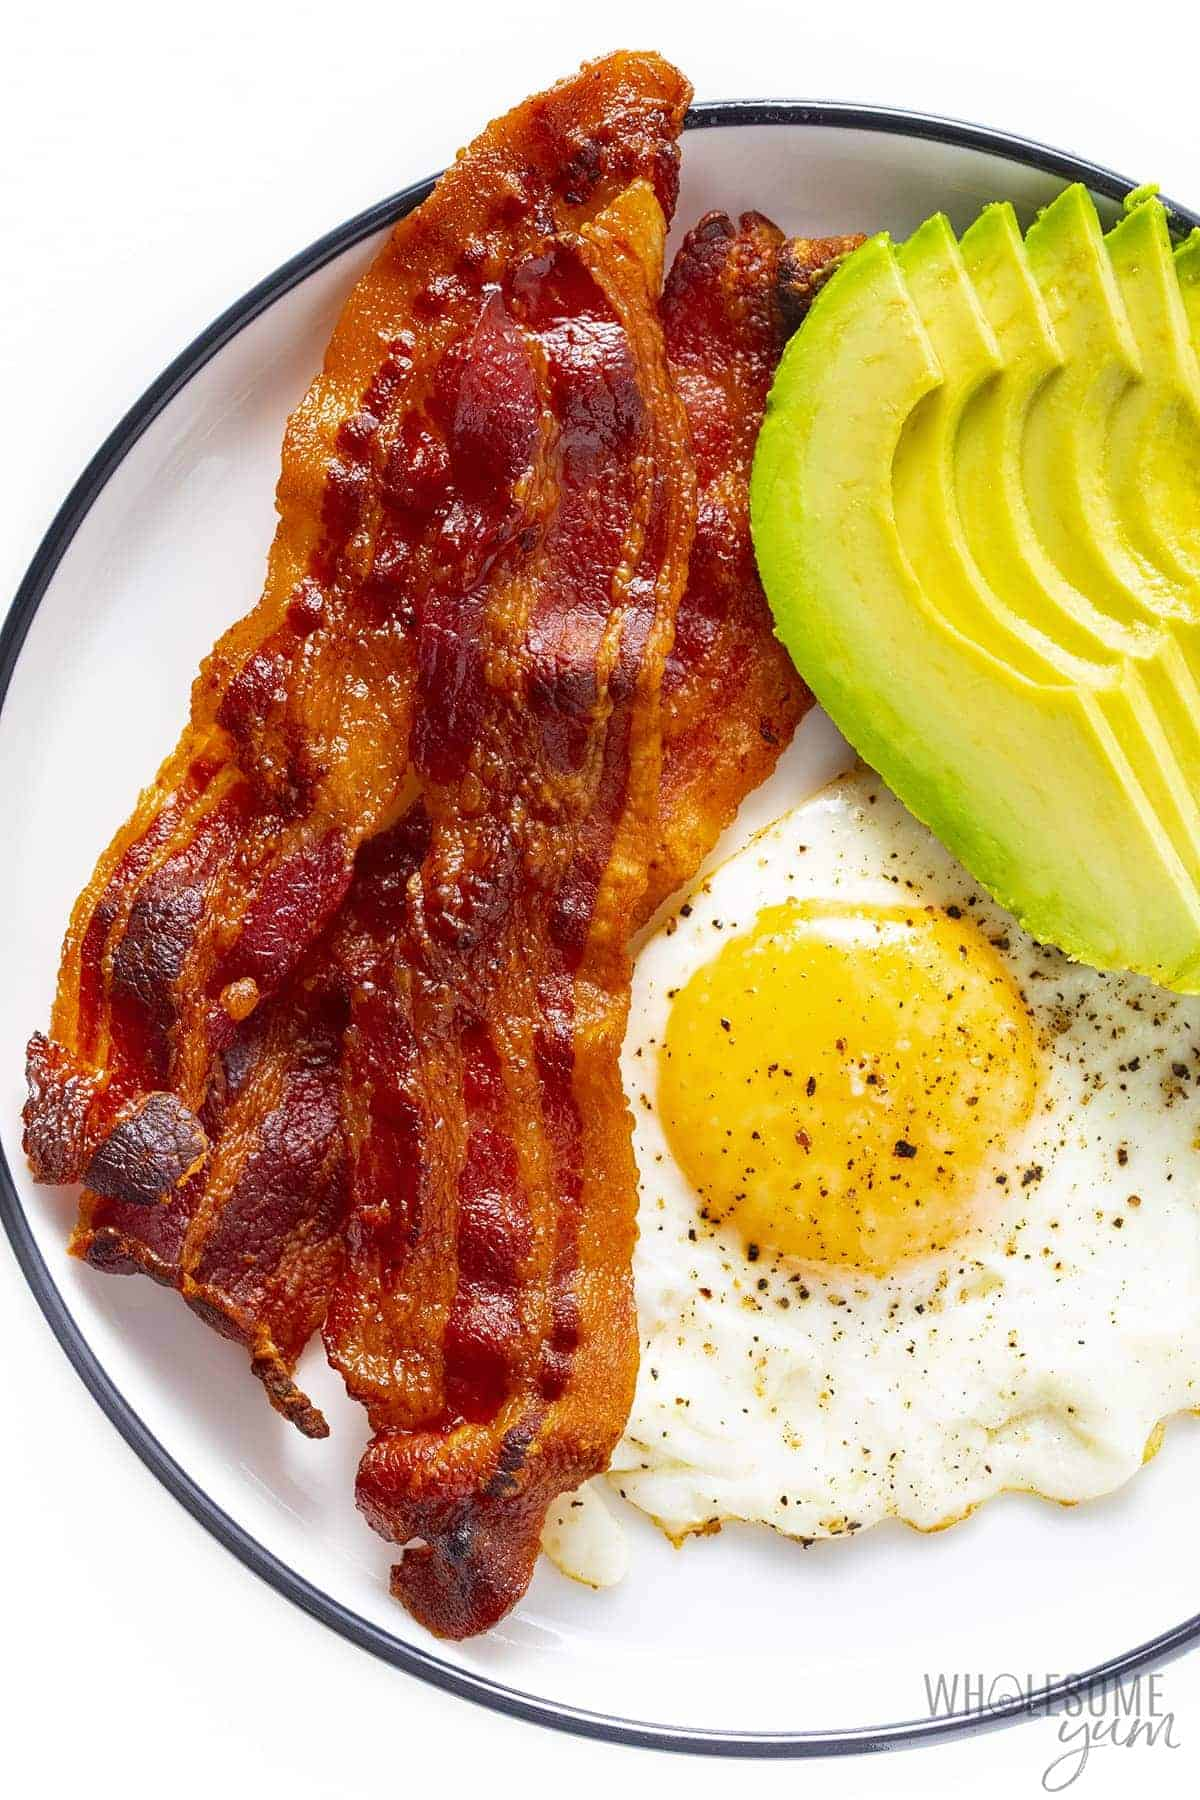 Plate of bacon, egg and avocado